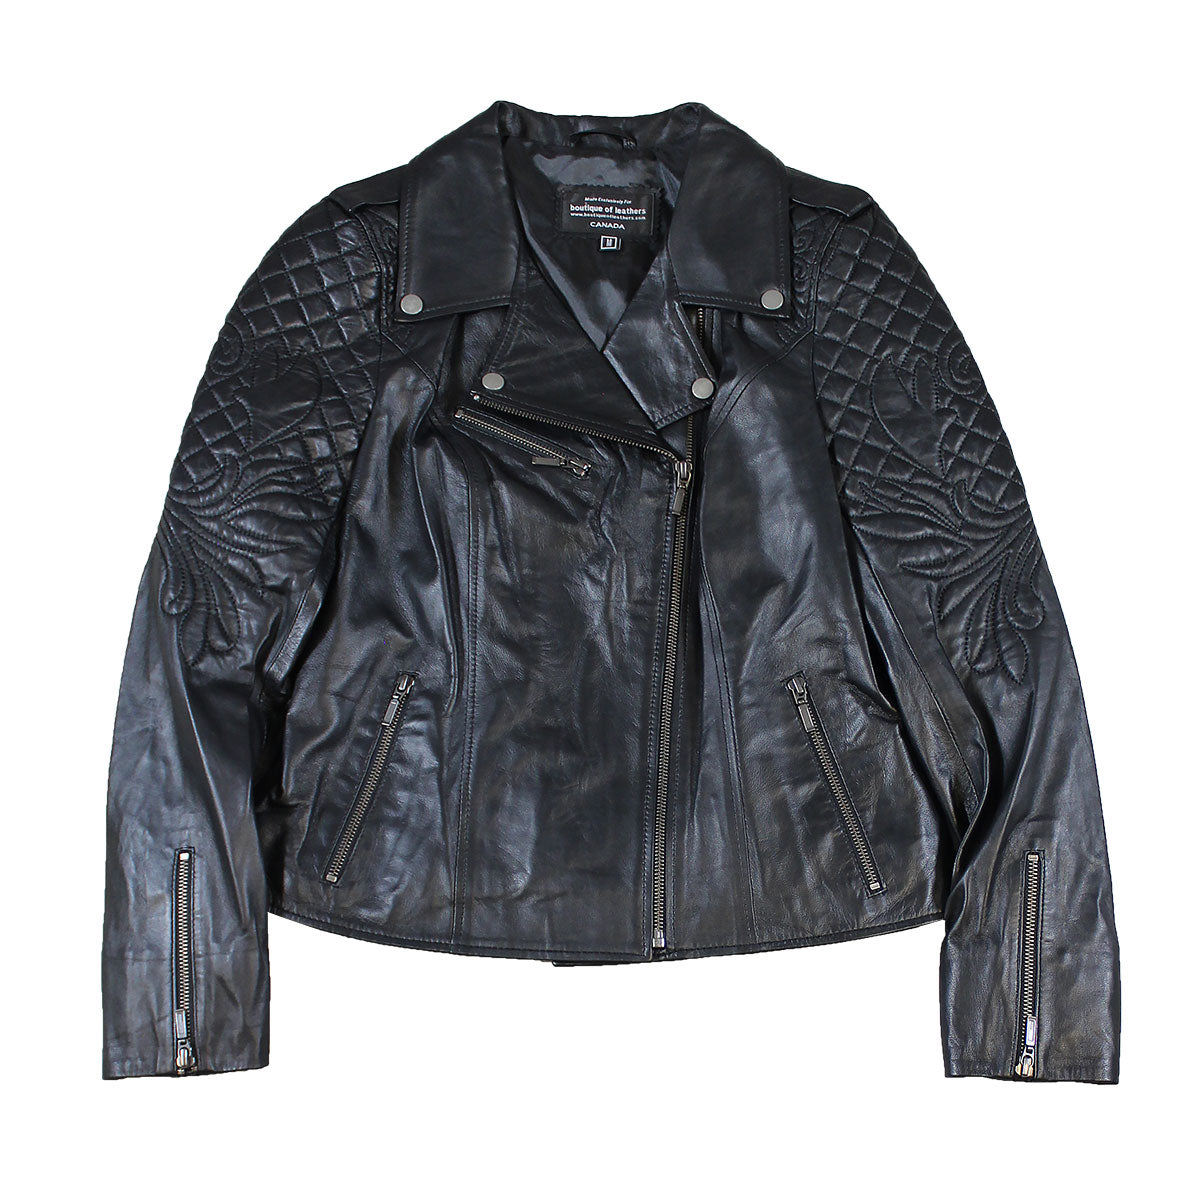 444824ba0 Boutique of Leathers & Open Road | Shop Quality Leather Jackets